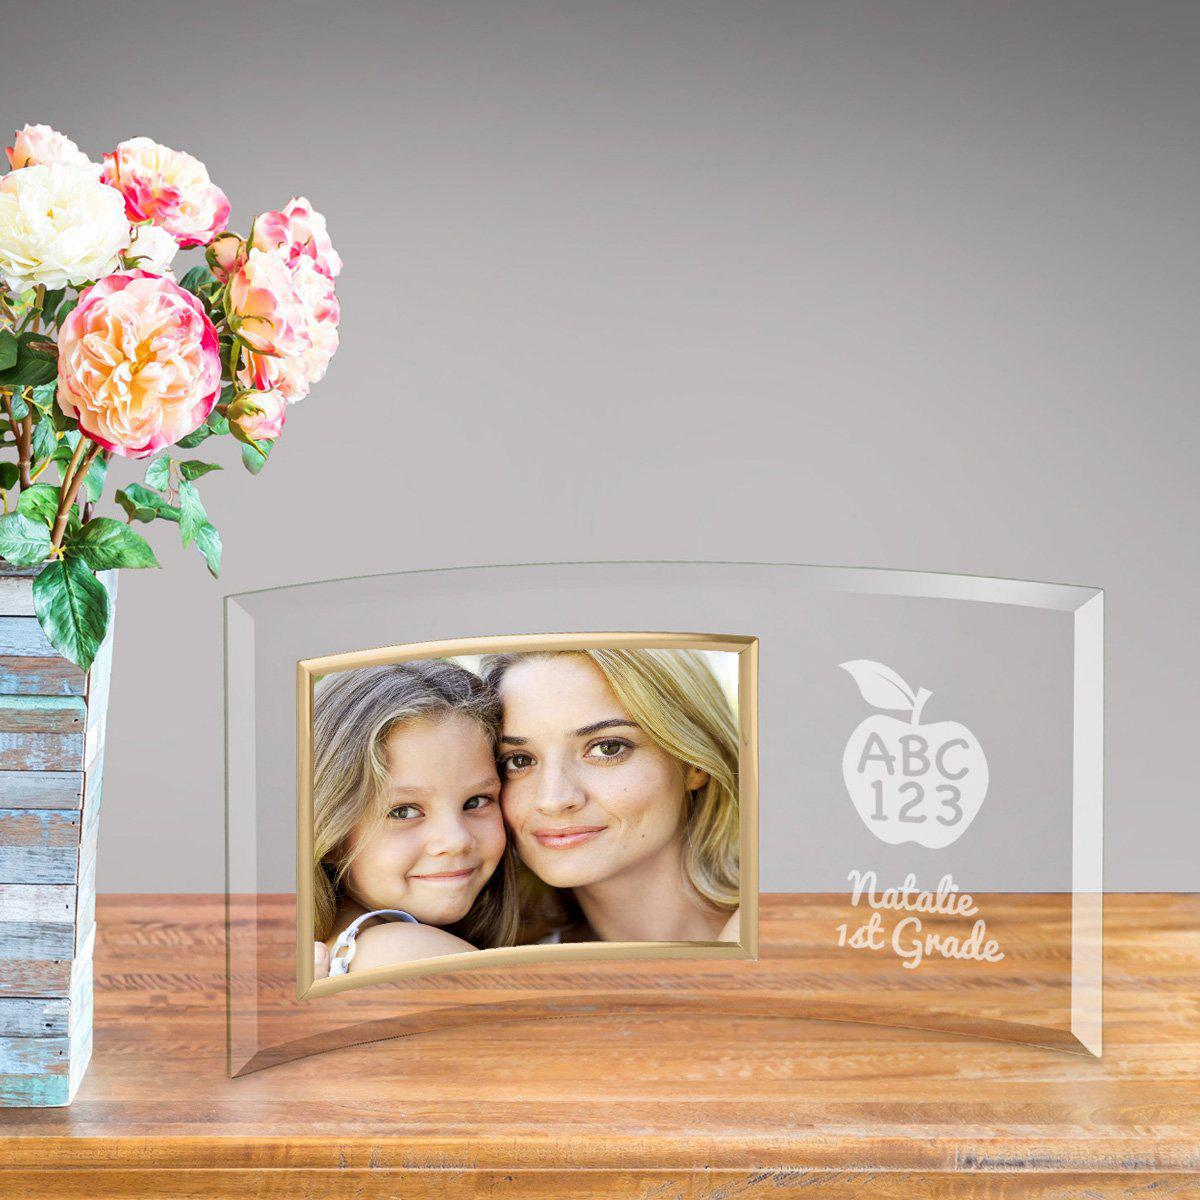 Personalized Glass Picture Frame - ABC 123